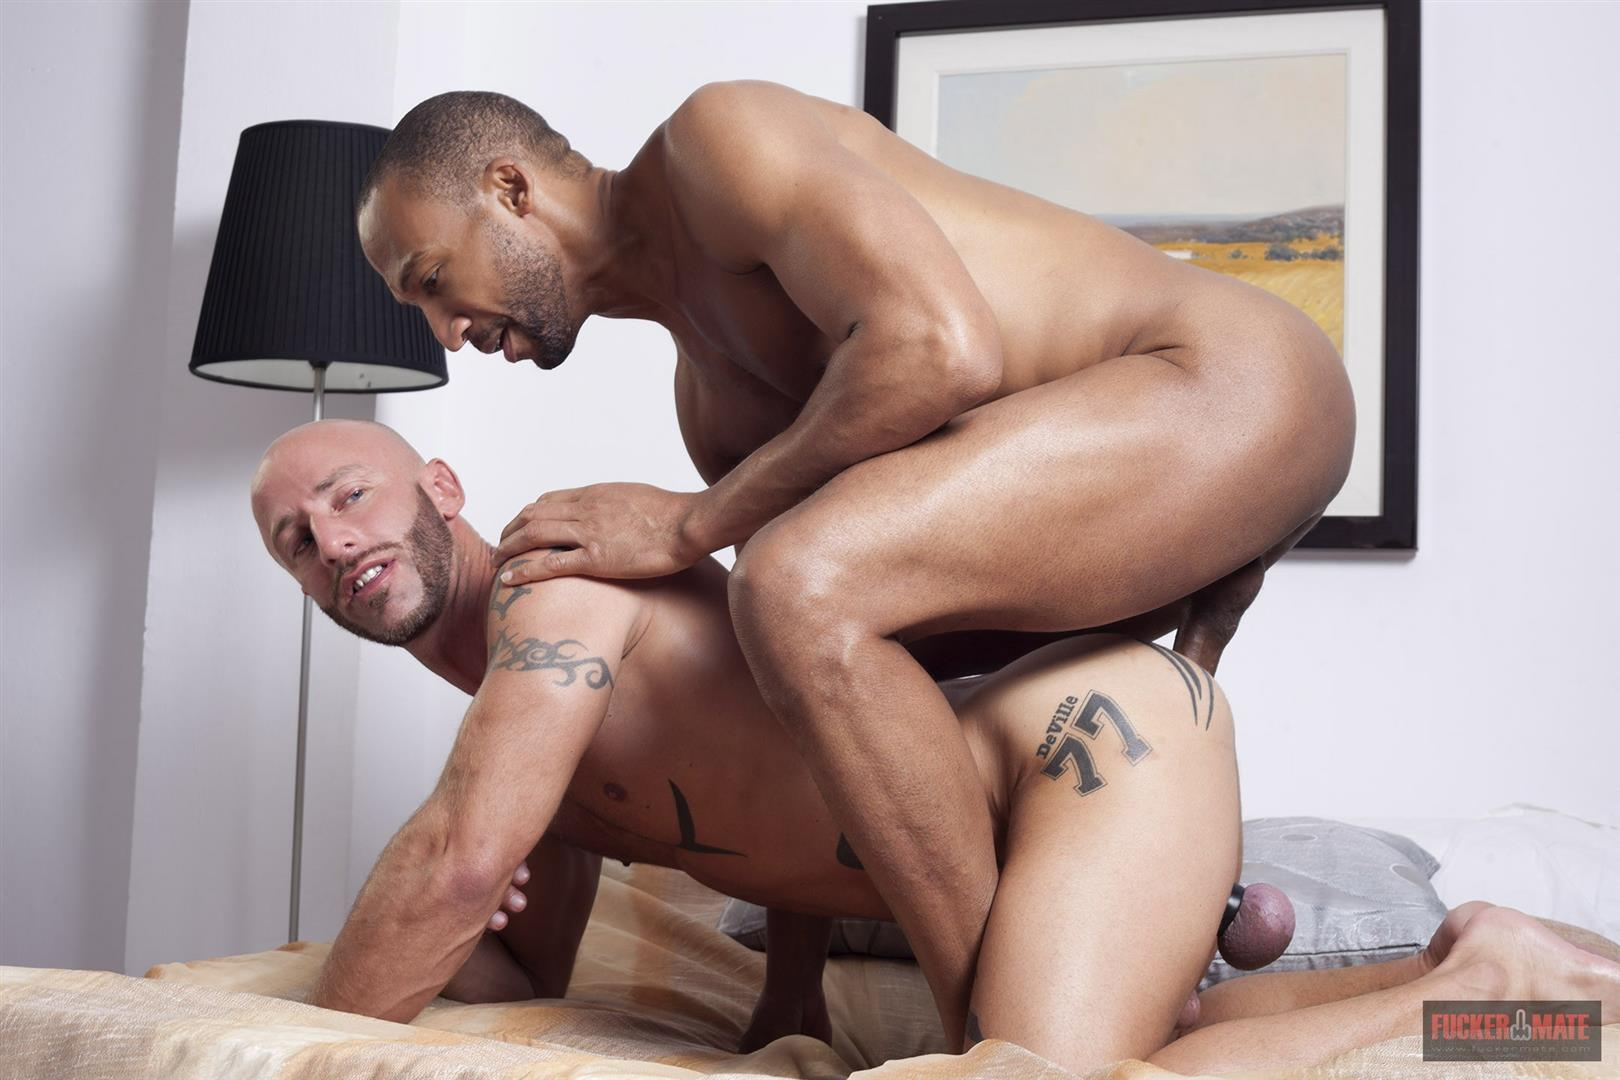 Fuckermate-Buster-Sly-and-Aymeric-Deville-Interracial-bareback-fucking-Amateur-Gay-Porn-09 Interracial Bareback Breeding With Buster Sly and Aymeric Deville